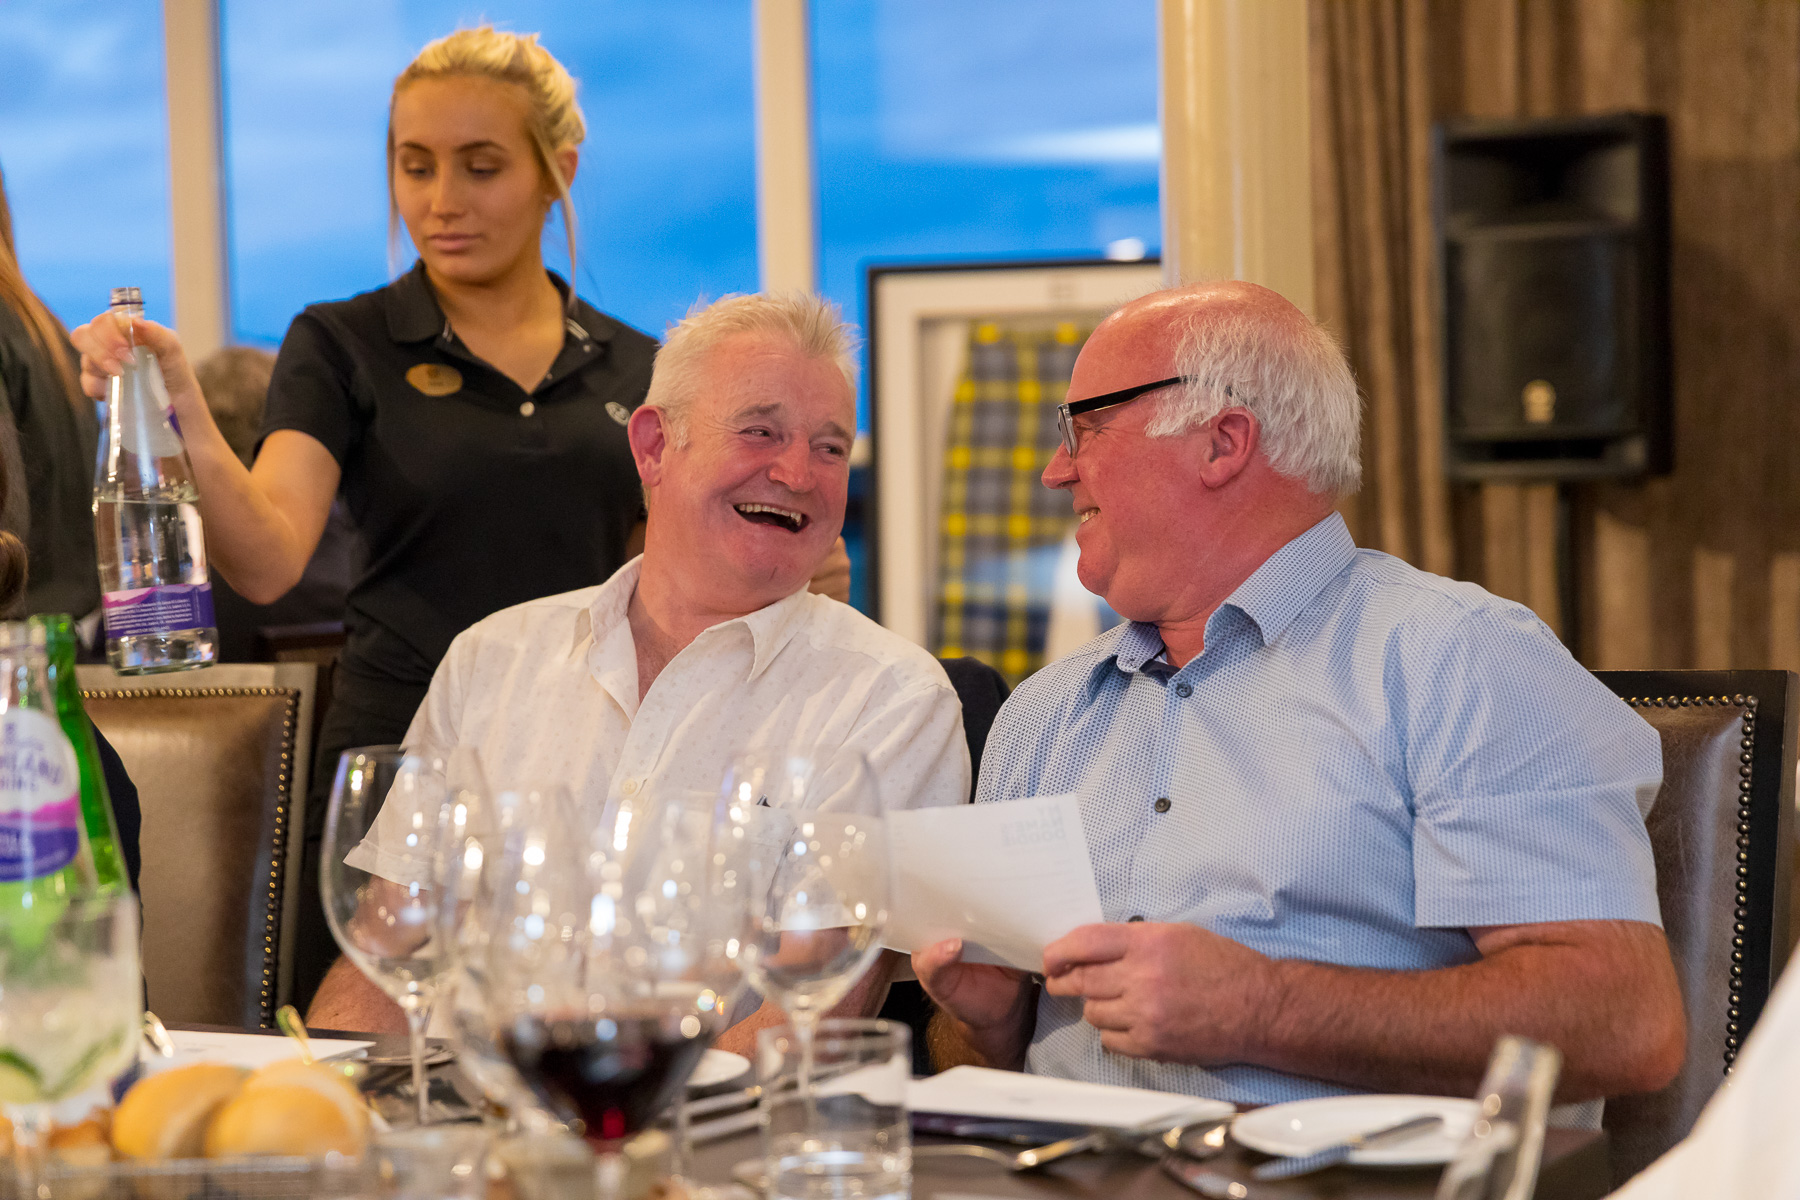 Doddie-golf-day-dinner-3.jpg